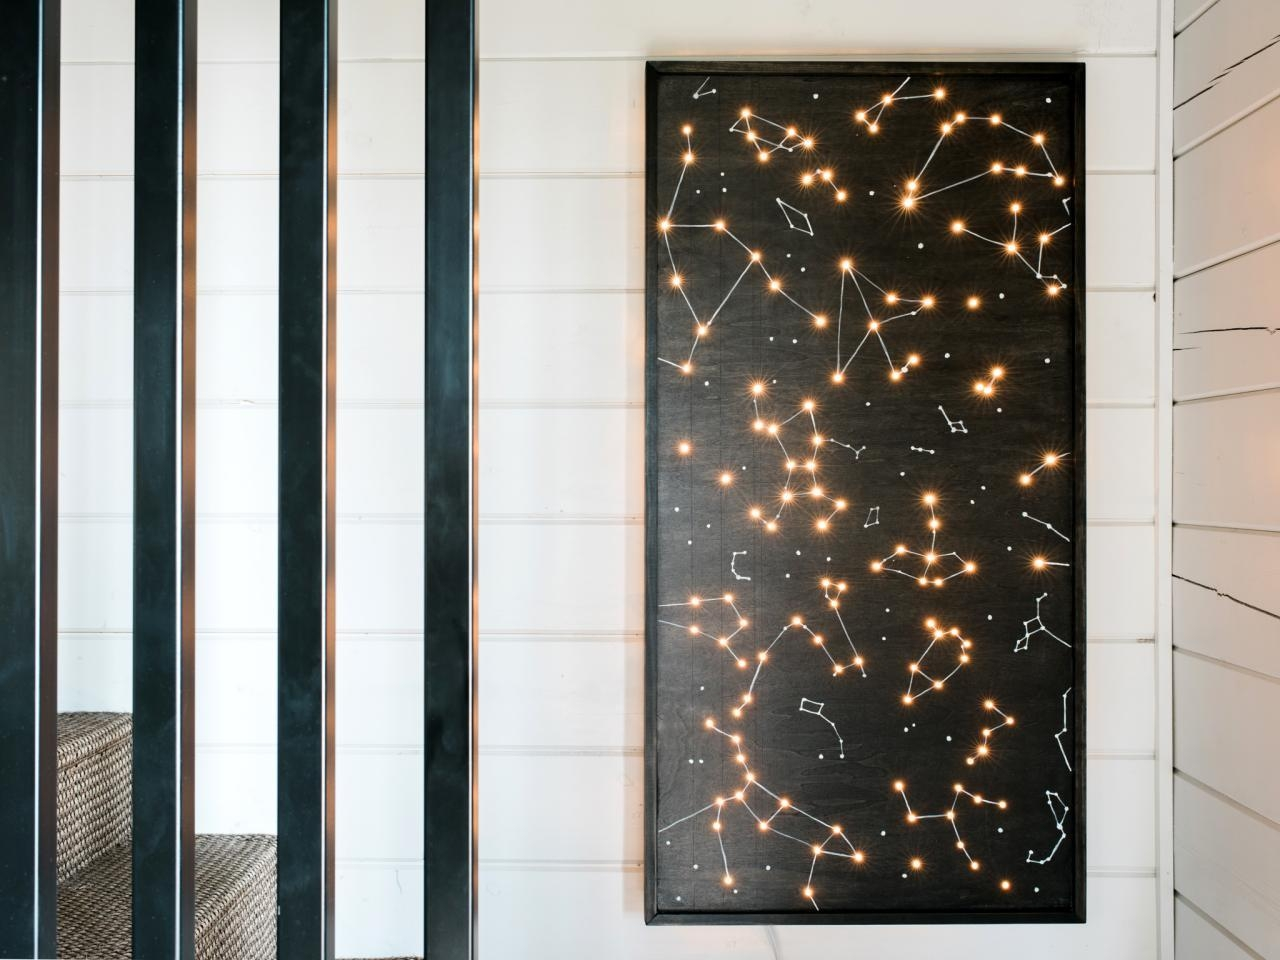 How To Make Illuminated Wall Art | How Tos | Diy Inside Backlit Wall Art (Image 6 of 20)